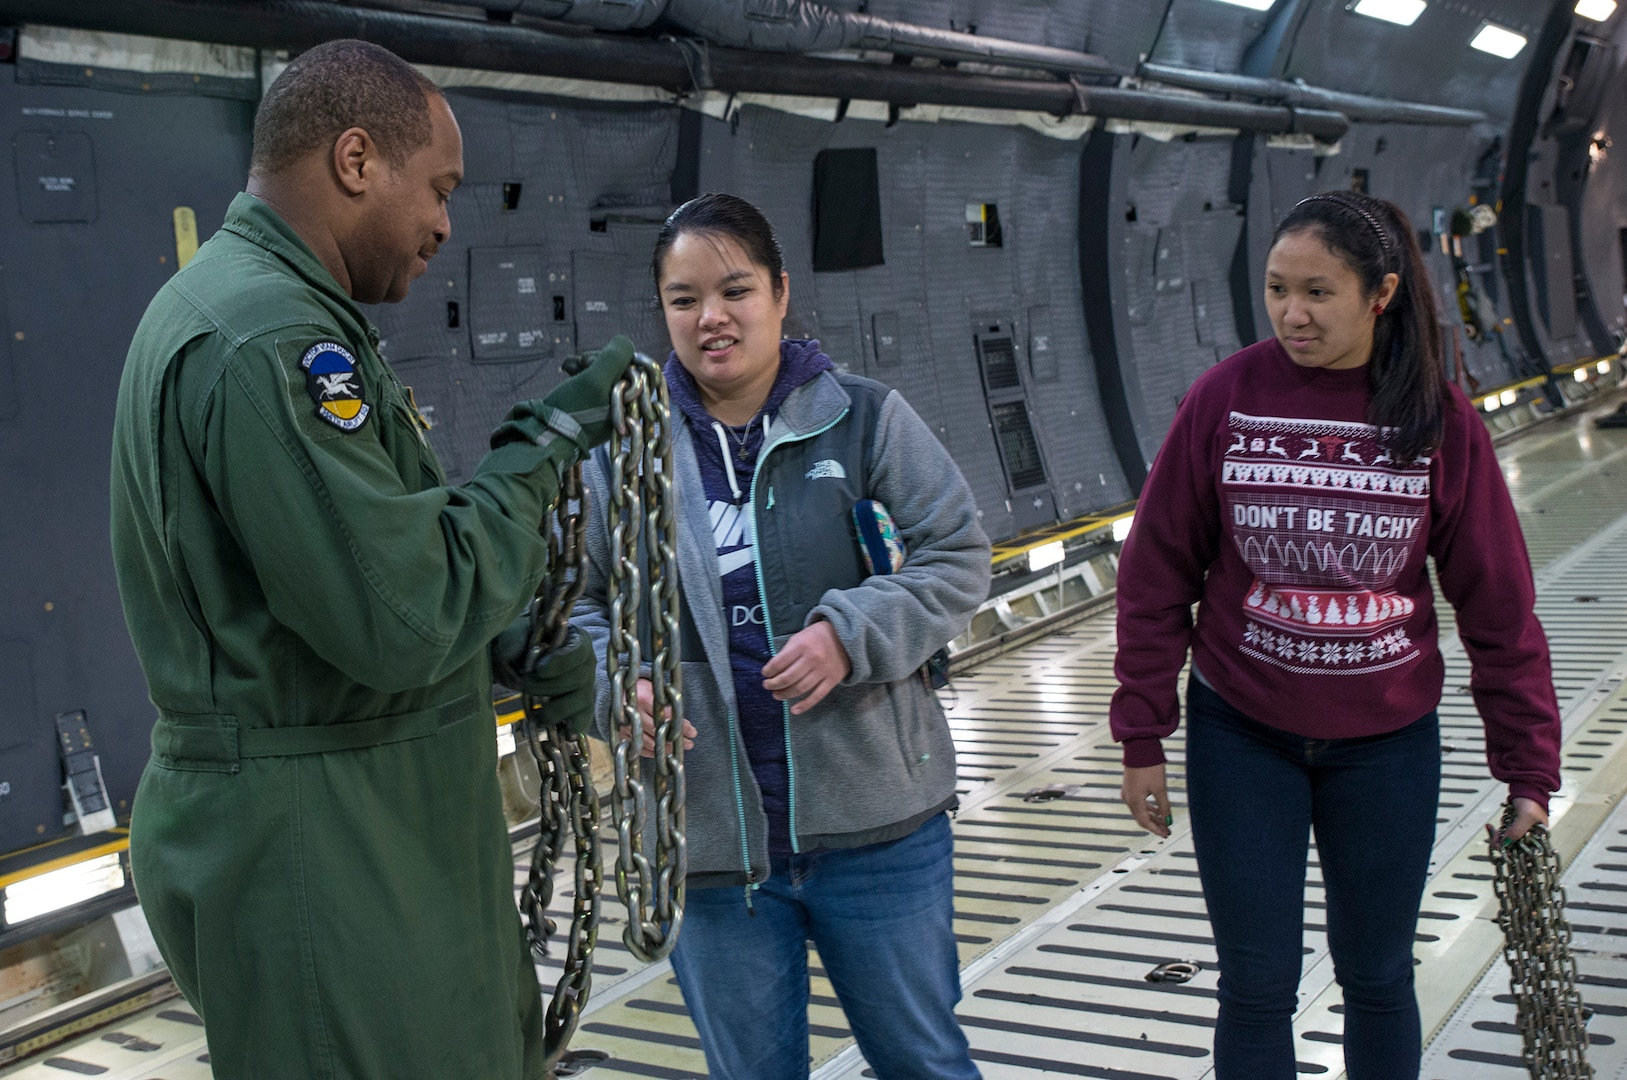 Master Sgt. Bryan Boyd (left), 356th Airlift Squadron loadmaster, shows touring visitors the different chains used to tie down cargo during a walk-through tour of a C-5M Super Galaxy aircraft Dec. 18, 2017 at Joint Base San Antonio-Lackland, Texas. The visitors also toured the C-5 flight simulator at the 733rd Training Squadron.